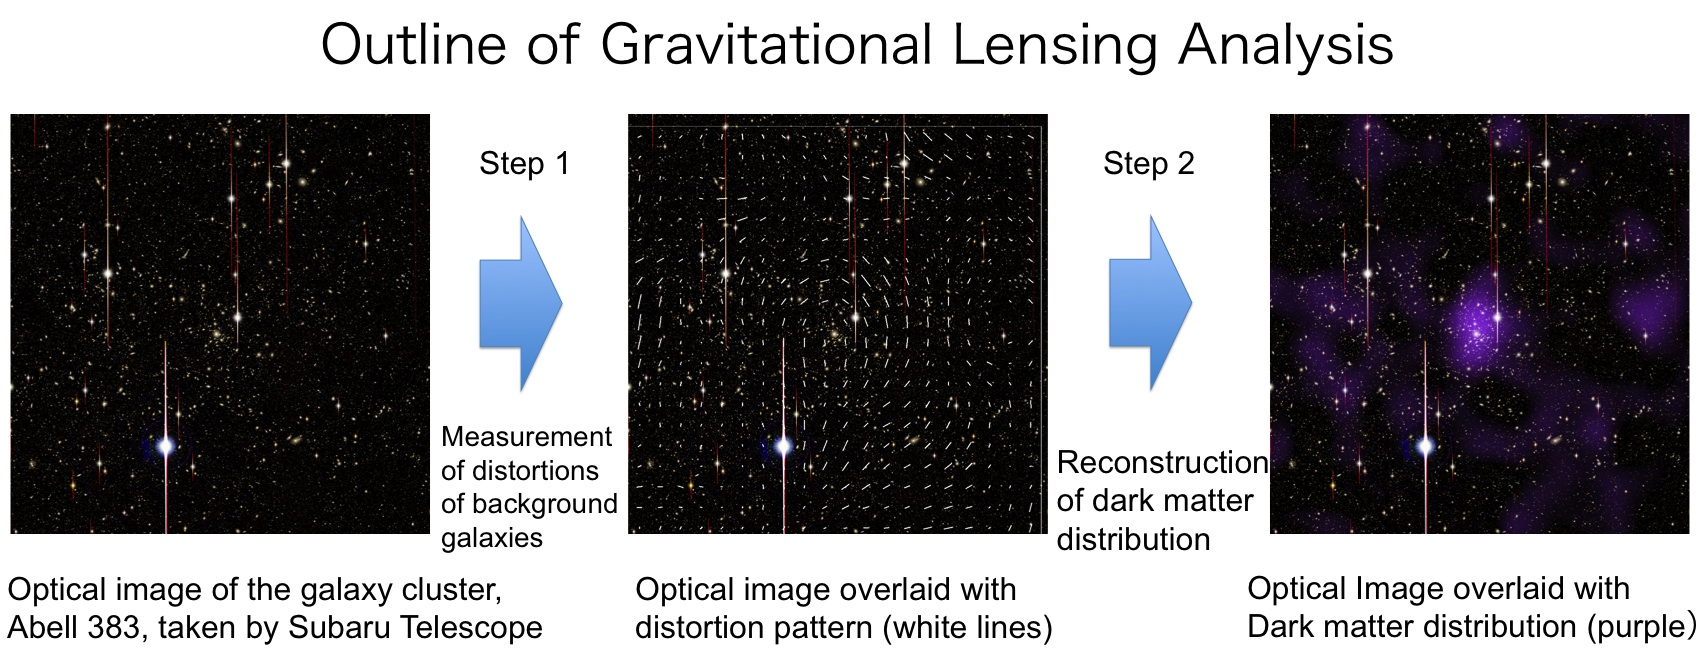 Figure 1: An outline of how the dark matter distribution (right) was reconstrcted from optical images (left) taken by the Subaru Telescope. A precise measurement of the shapes of background galaxies in observed images enabled the team to investigate the distortion pattern (center) and then reconstruct the distribution of dark matter in the galaxy clusters. (Credit: NAOJ/ASIAA/School of Physics and Astronomy, University of Birmingham/Kavli IPMU/Astronomical Institute, Tohoku University)